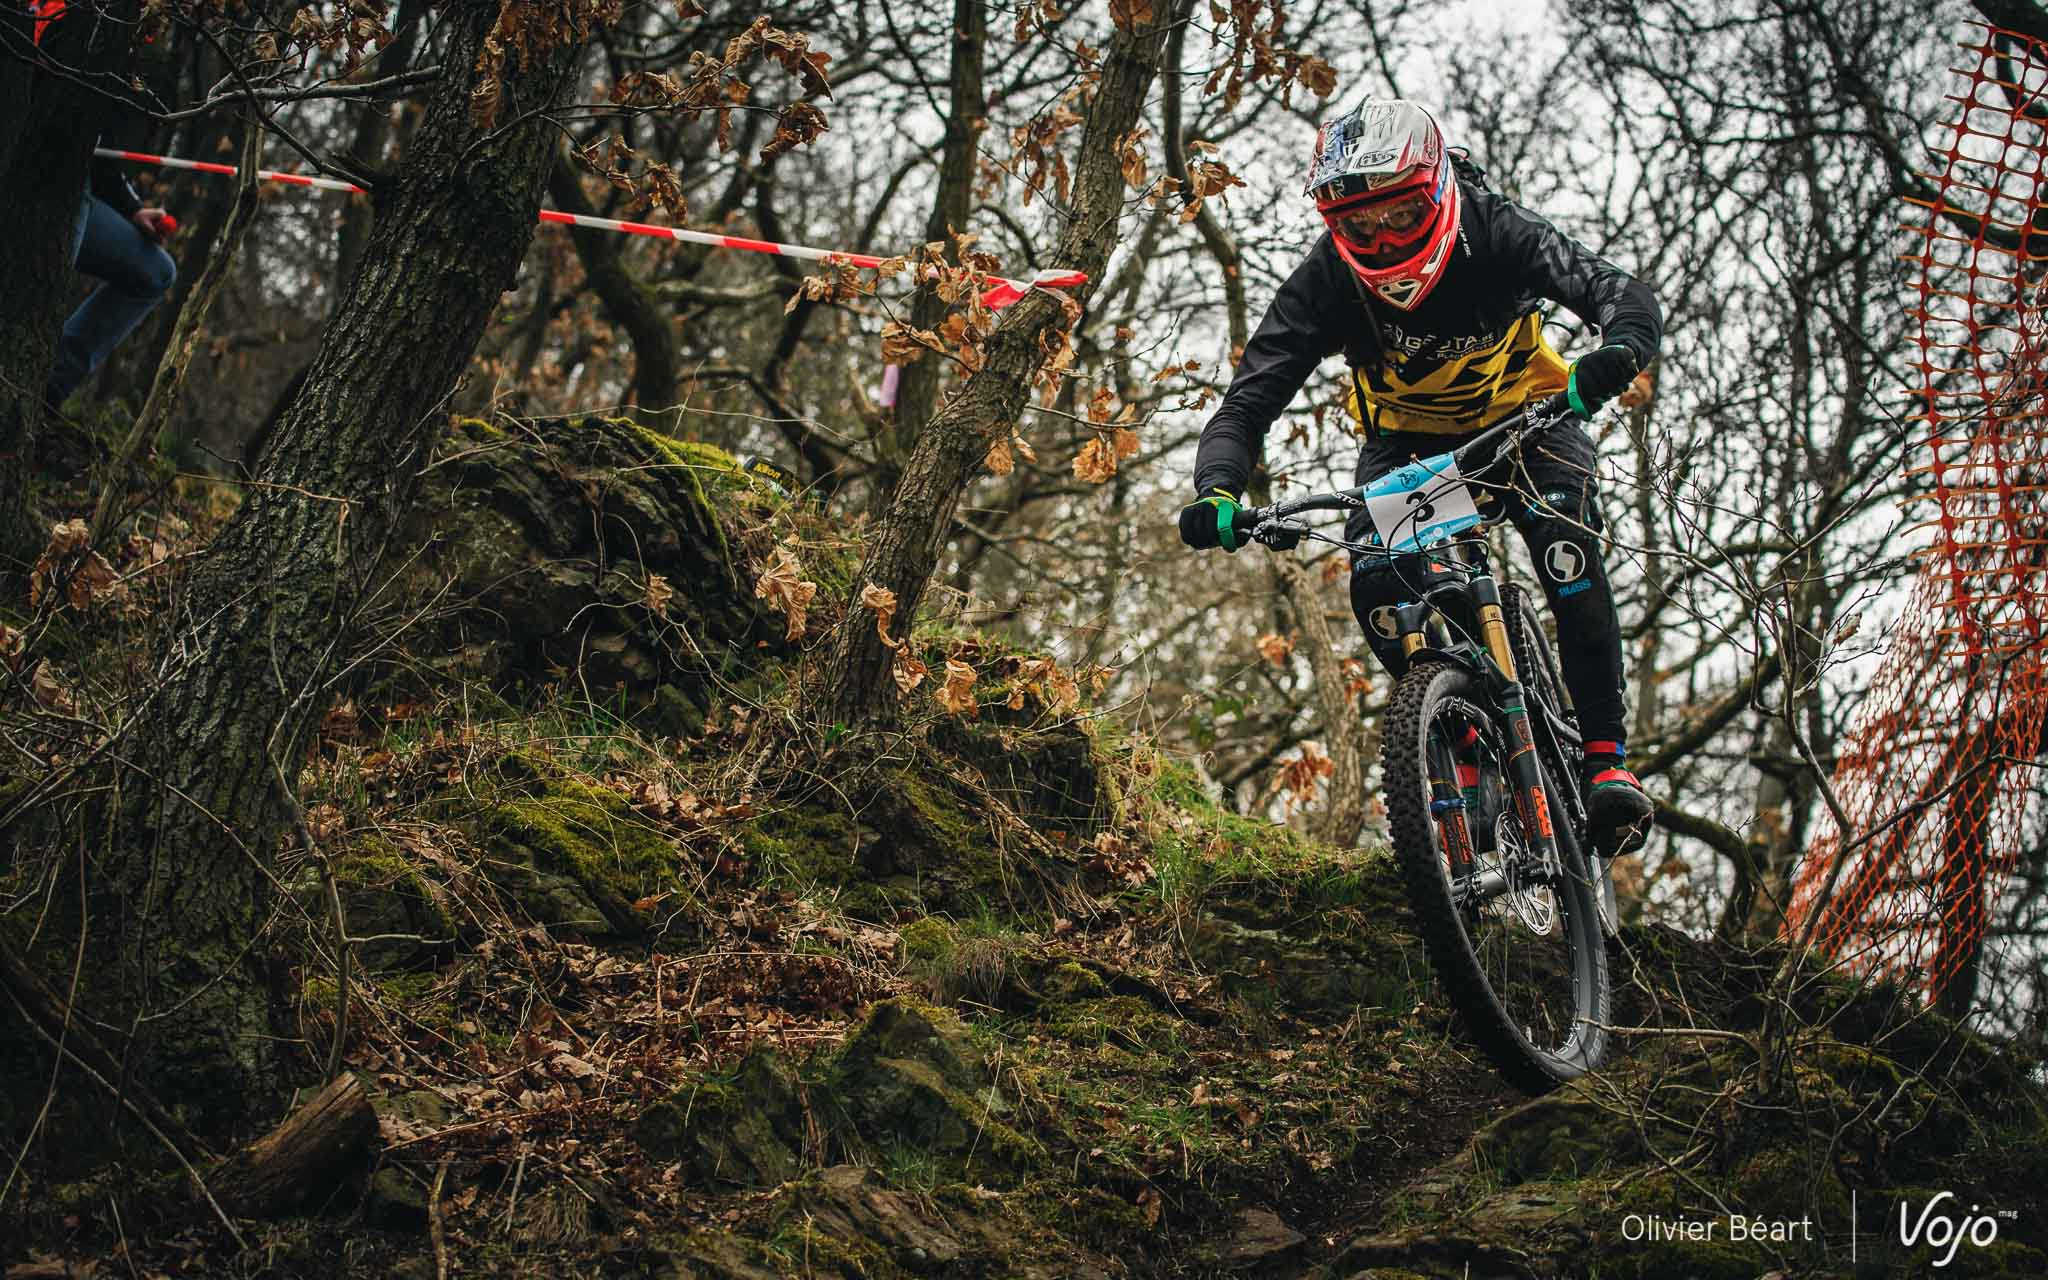 Belgian_Enduro_Cup_Chaudfontaine_2016_Copyright_OBeart_Vojomag-13